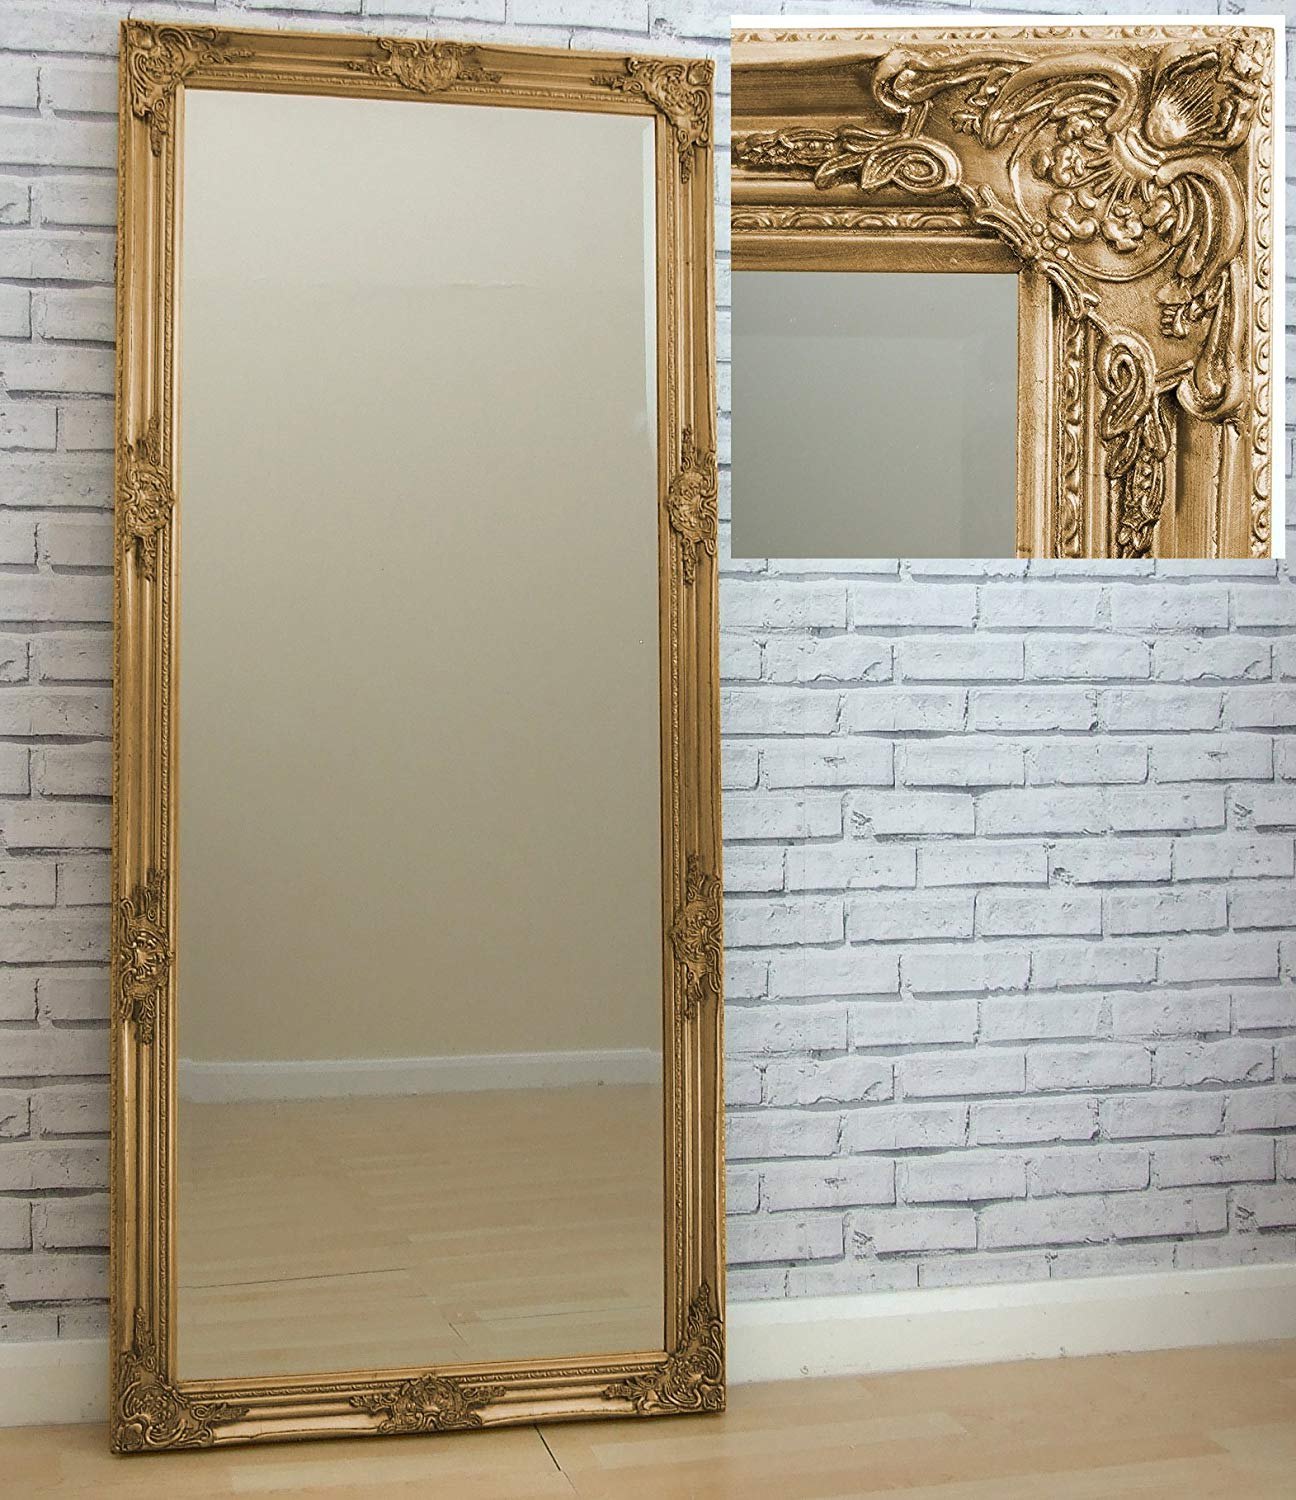 "Large Full Length Wall Mirrors Intended For Preferred Barcelona Trading Florence Large Vintage French Floor Full Length Wall  Mirror Gold 163Cm X 72Cm / 64"" X28"" (Gallery 6 of 20)"